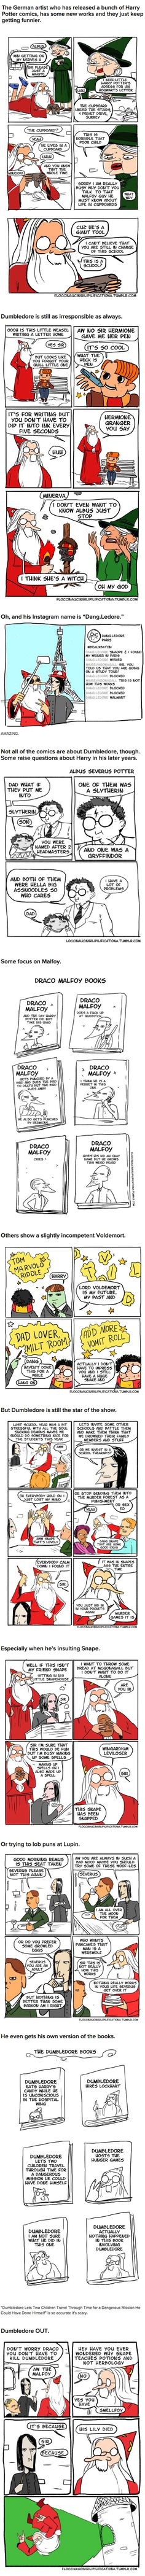 These Harry Potter Comics Prove That Dumbledore Was Totally Irresponsible! - 9GAG